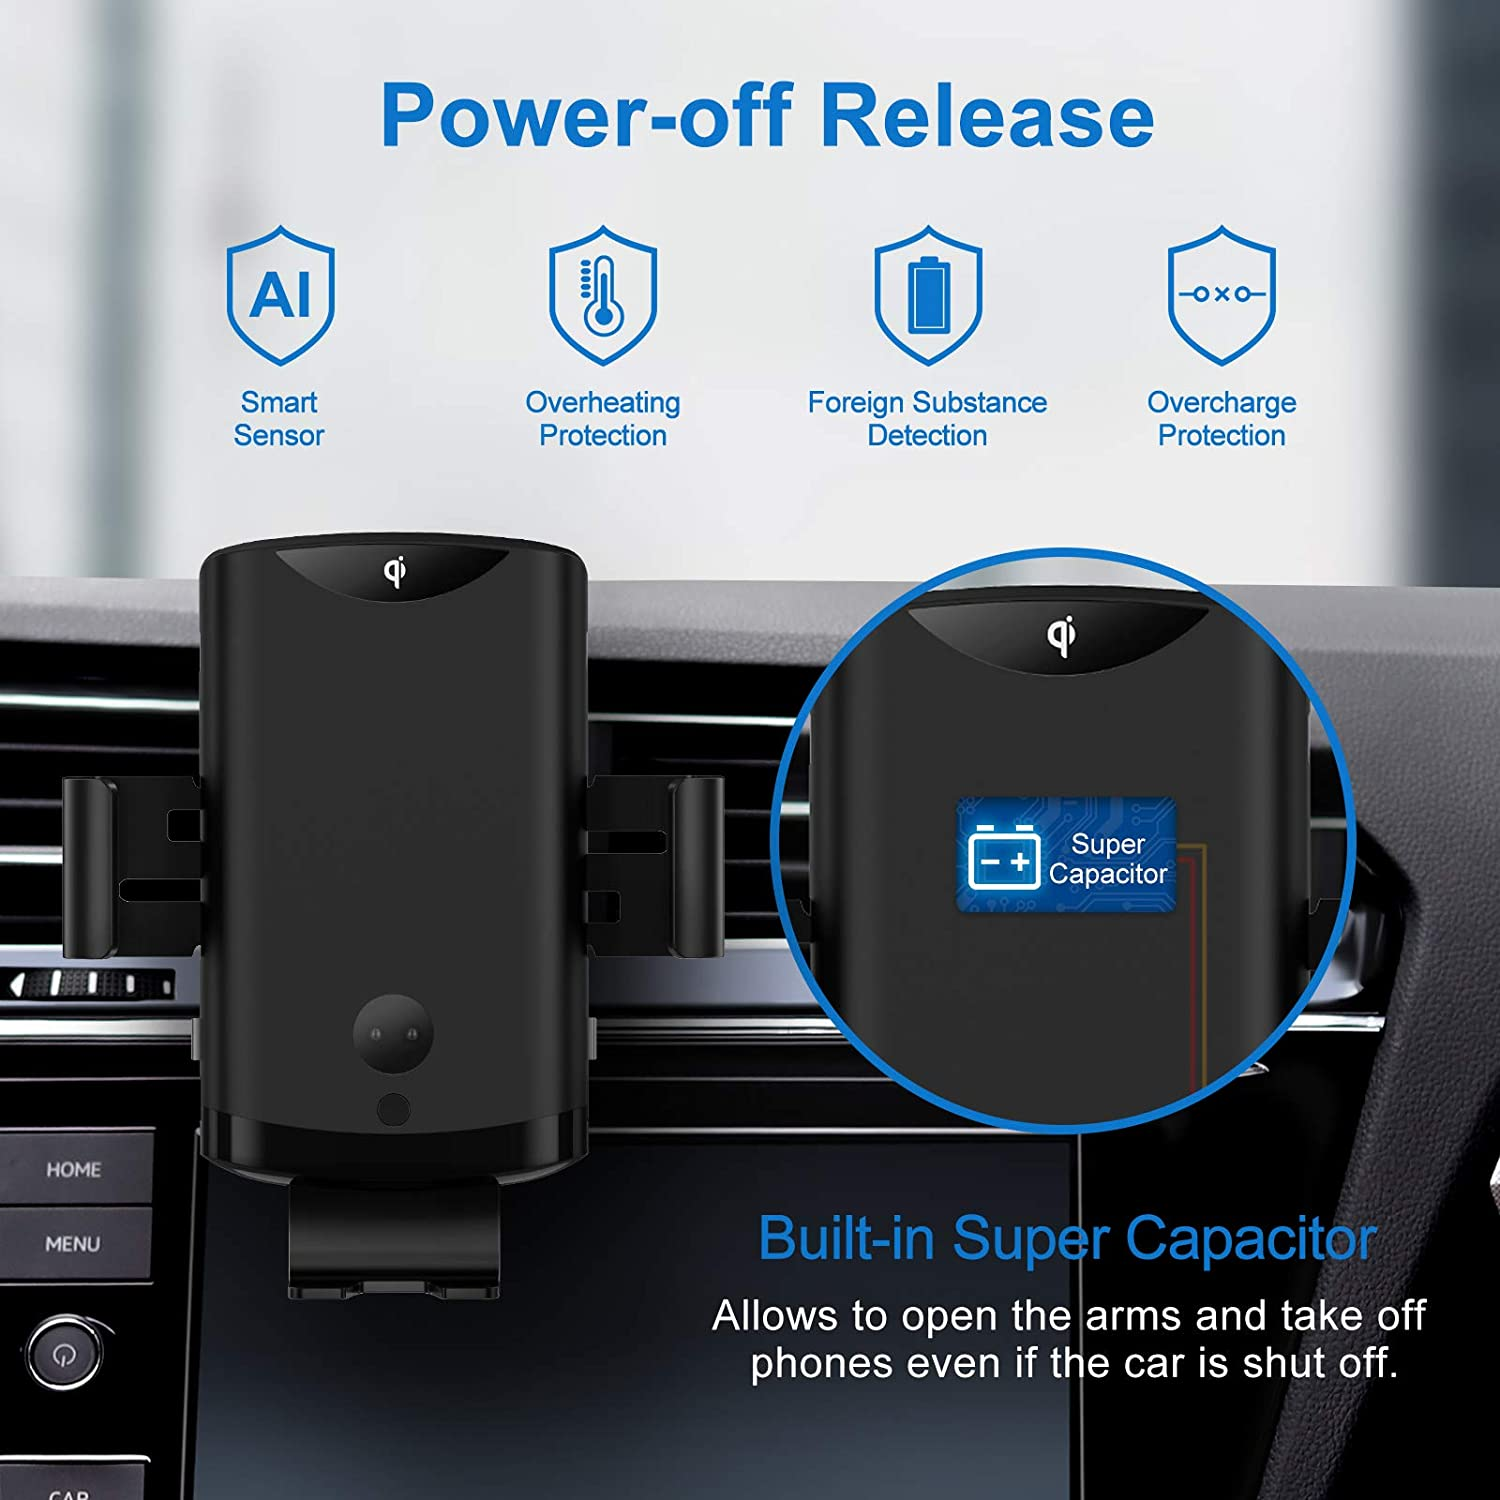 PLESON Max 15W Wireless Car Charger Mount /& 36W QC3.0 Car Charger iPhone 12//11 Pro Max//XR Qi Fast Charging Auto-Clamp Air Vent Car Phone Holder Compatible with Galaxy S20 Ultra//S10+//Note 10+//S8+ LG